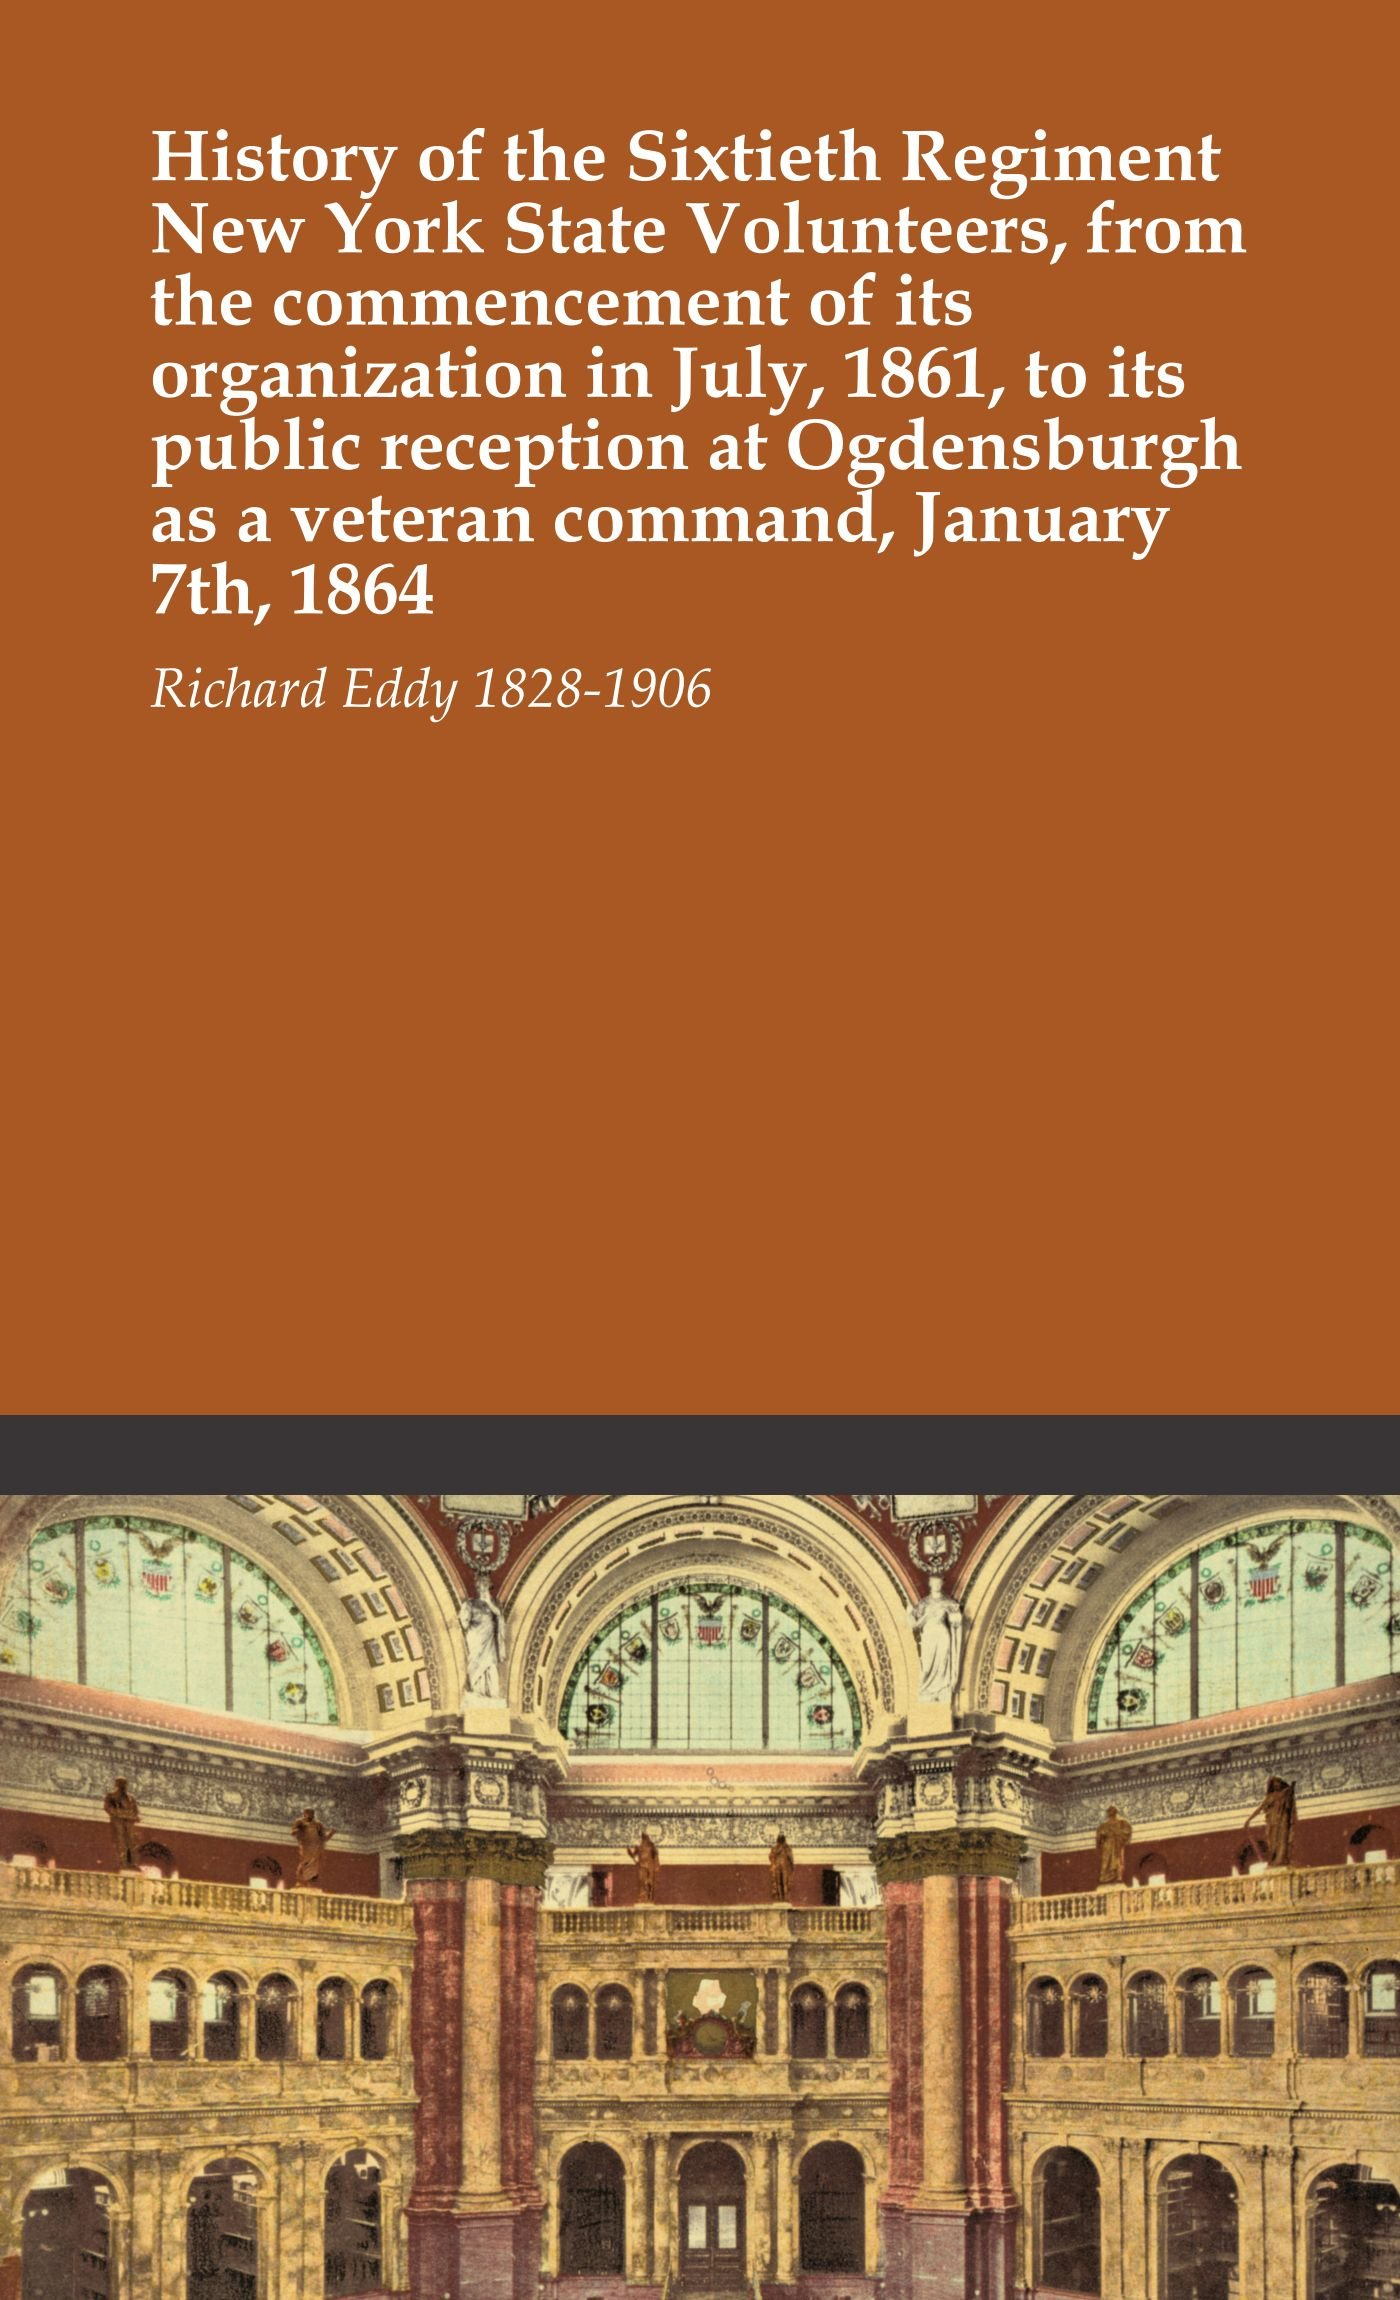 History of the Sixtieth Regiment New York State Volunteers, from the commencement of its organization in July, 1861, to its public reception at Ogdensburgh as a veteran command, January 7th, 1864 PDF